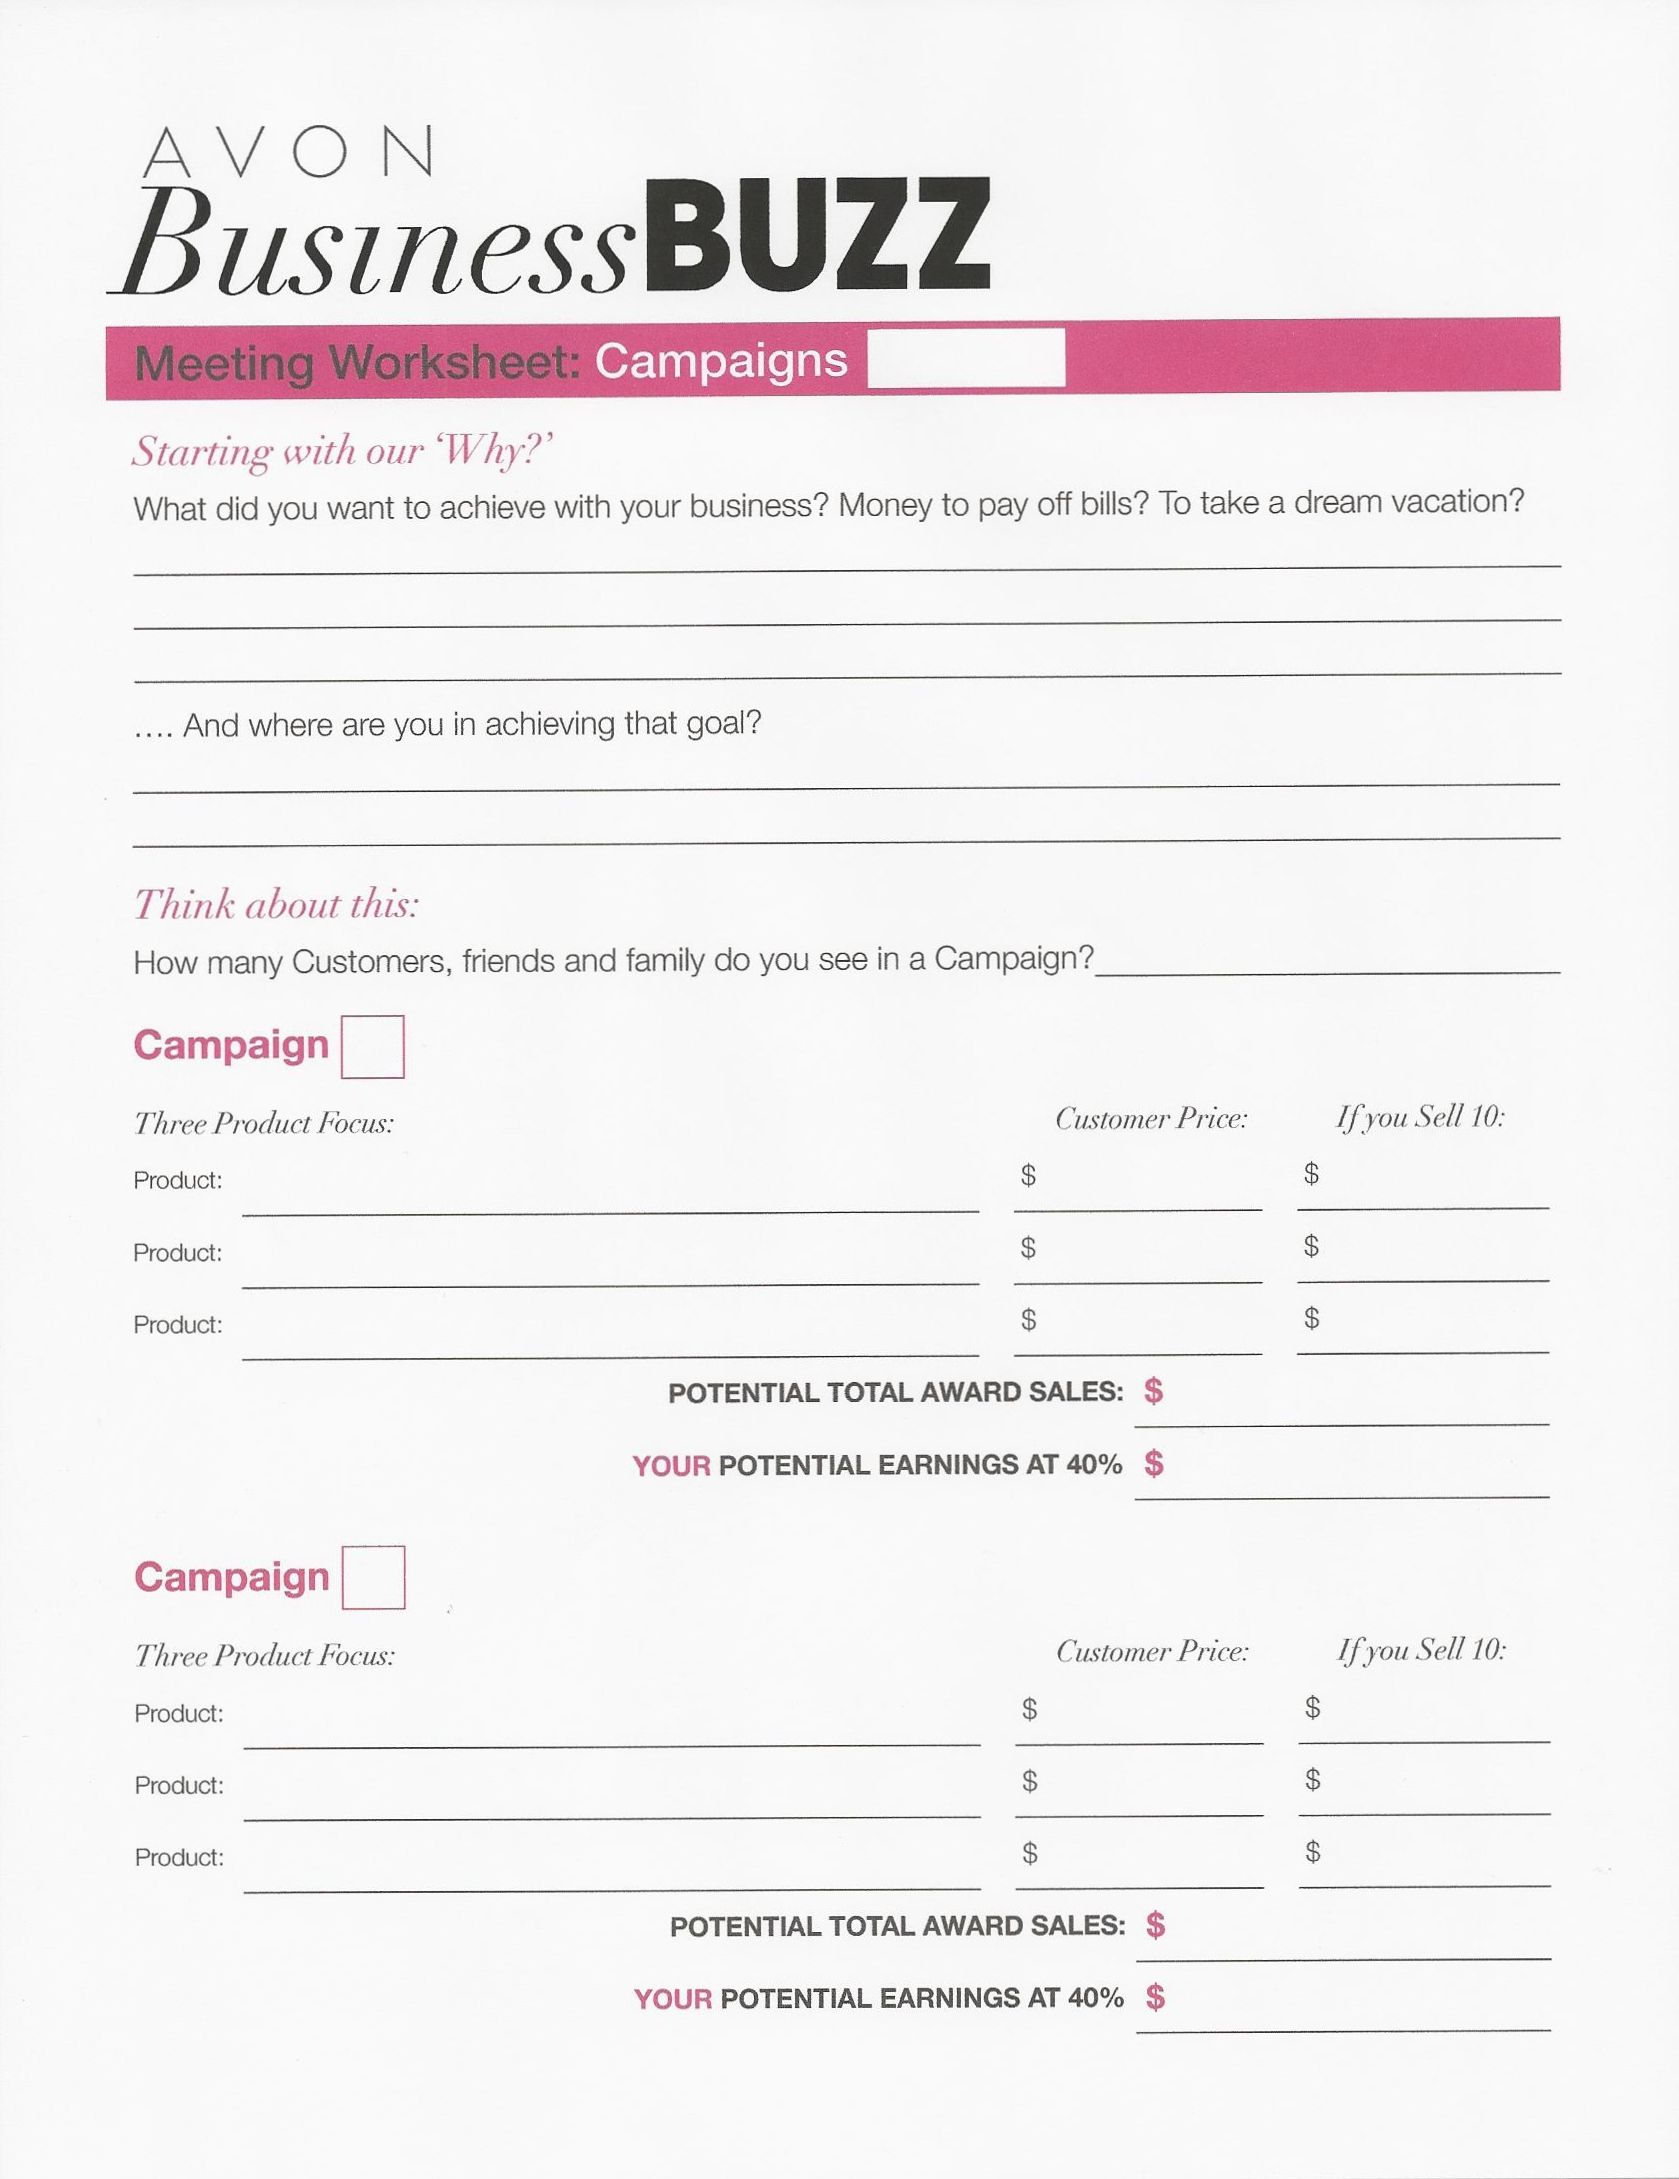 Business Buzz Worksheet 1 679 2 179 Pixels